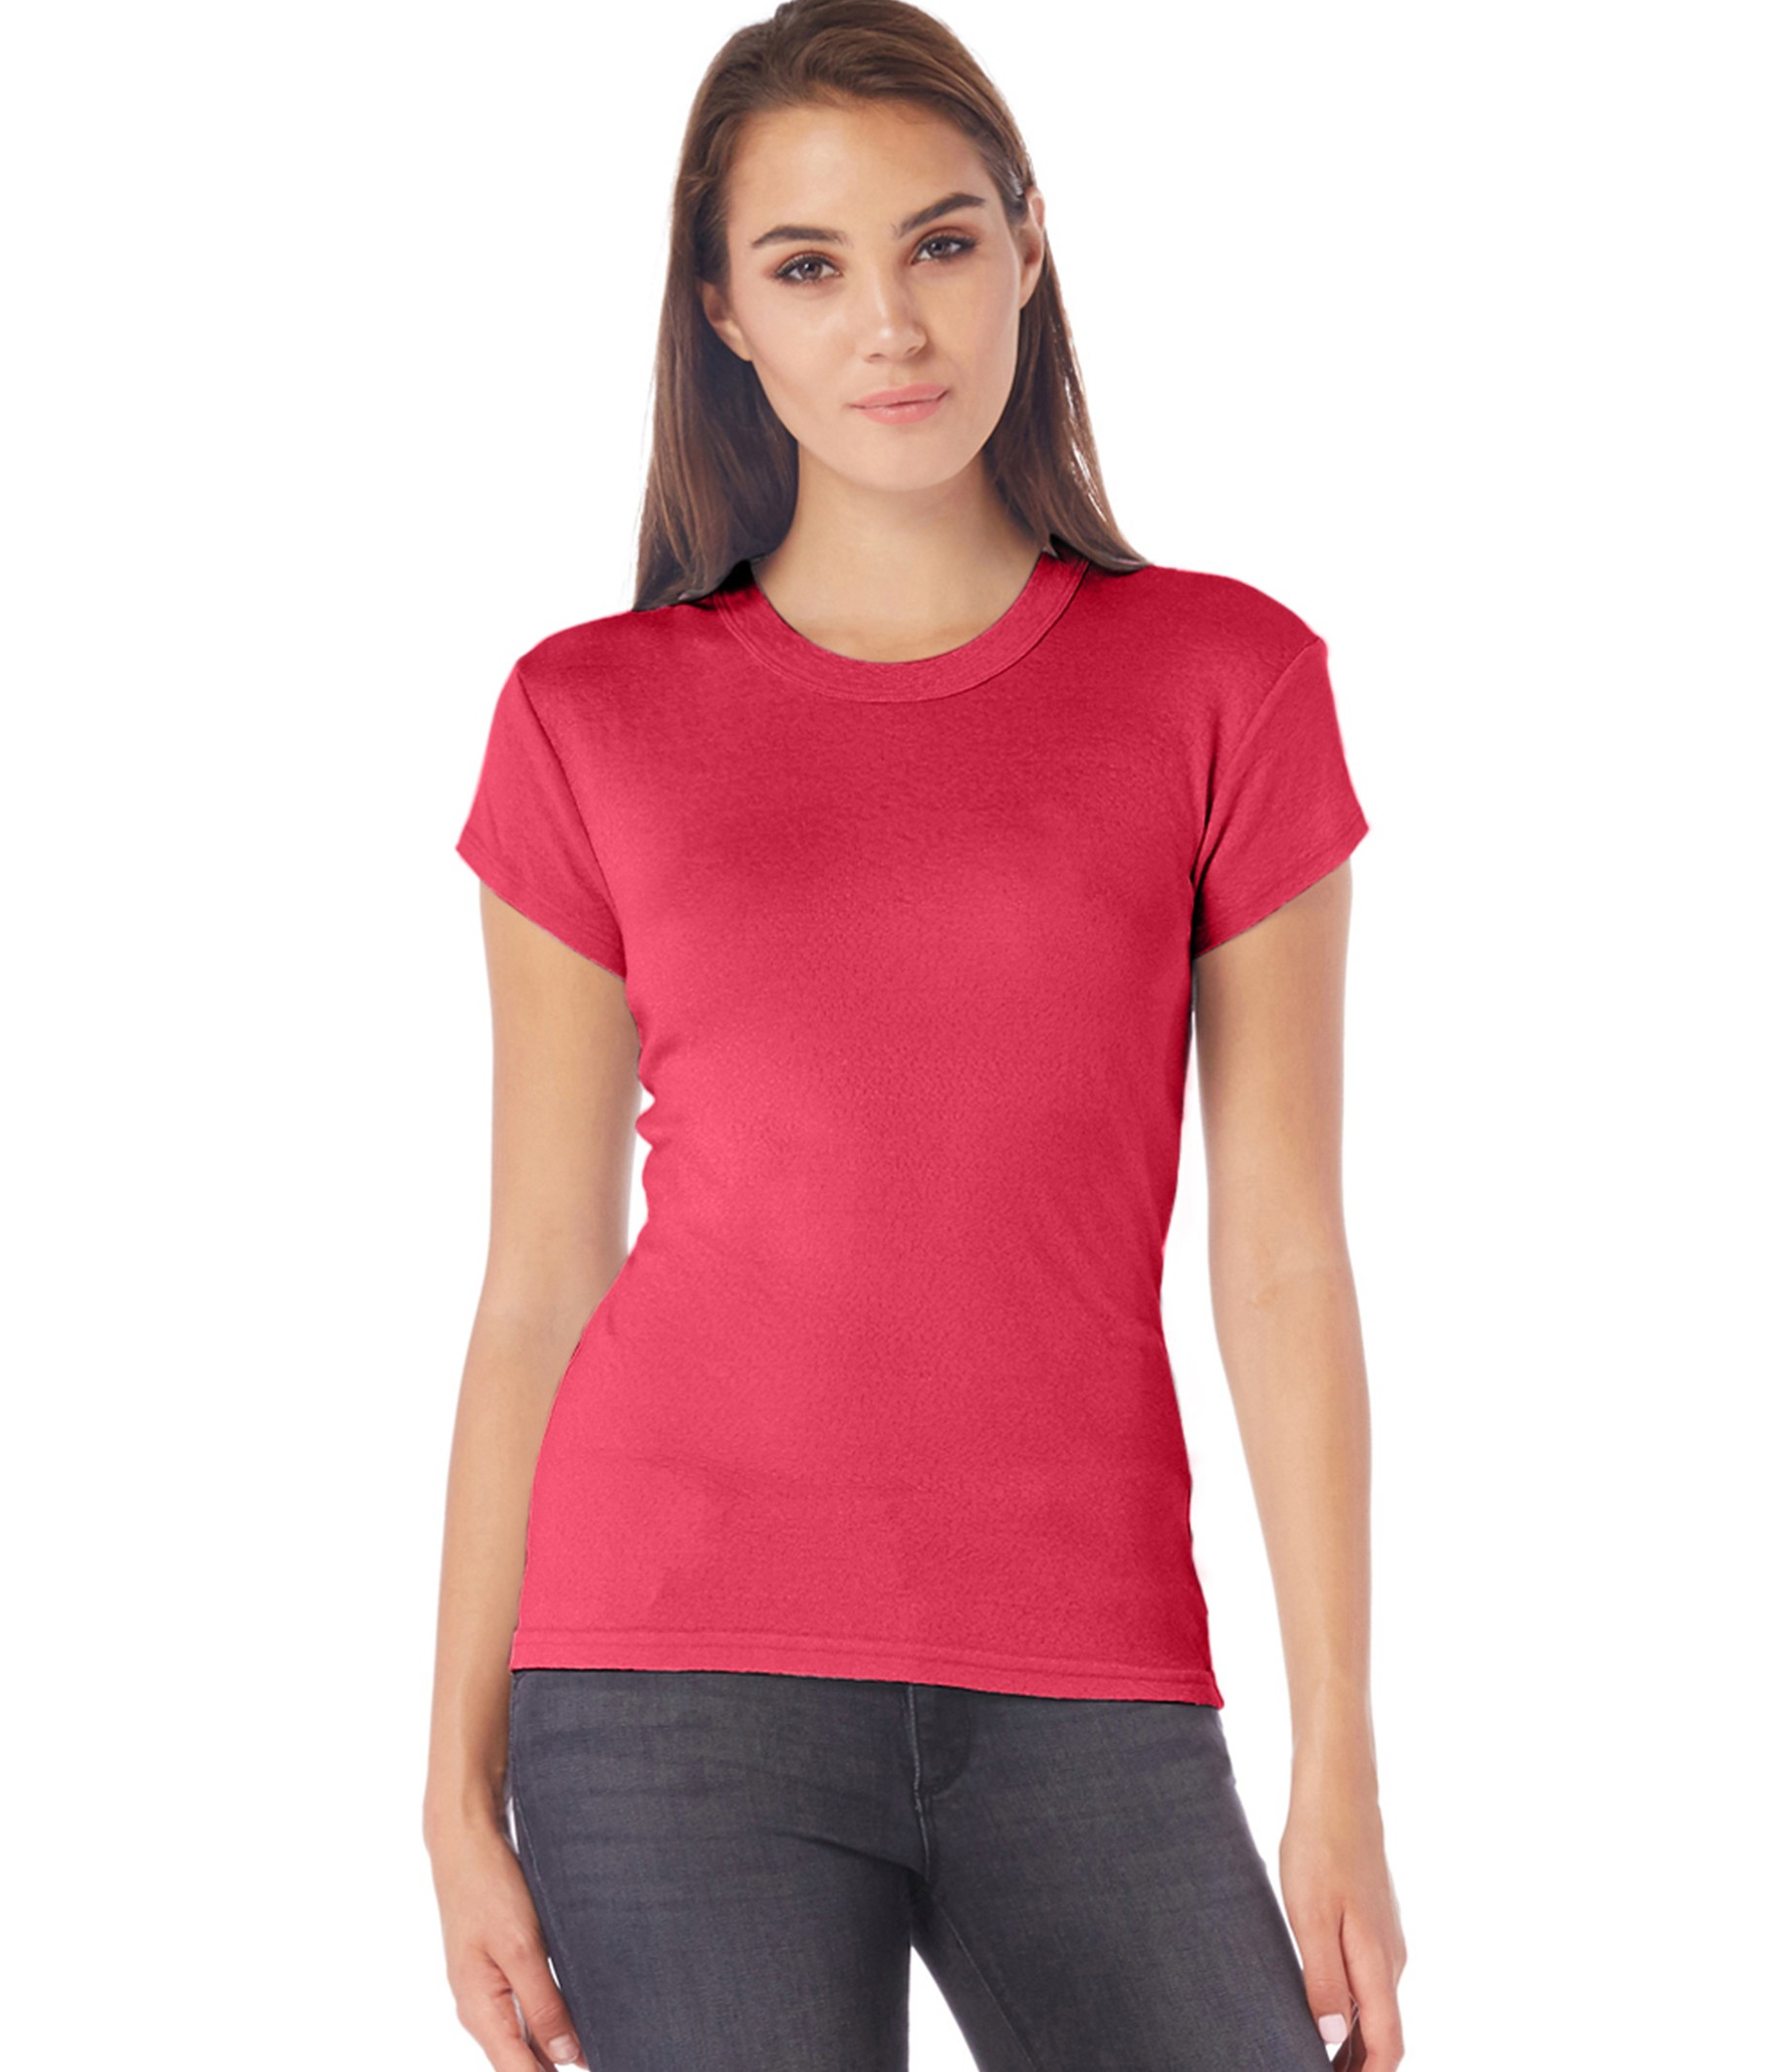 Michael stars shine capsleeve crew neck tee in red lyst for Michael stars tee shirts